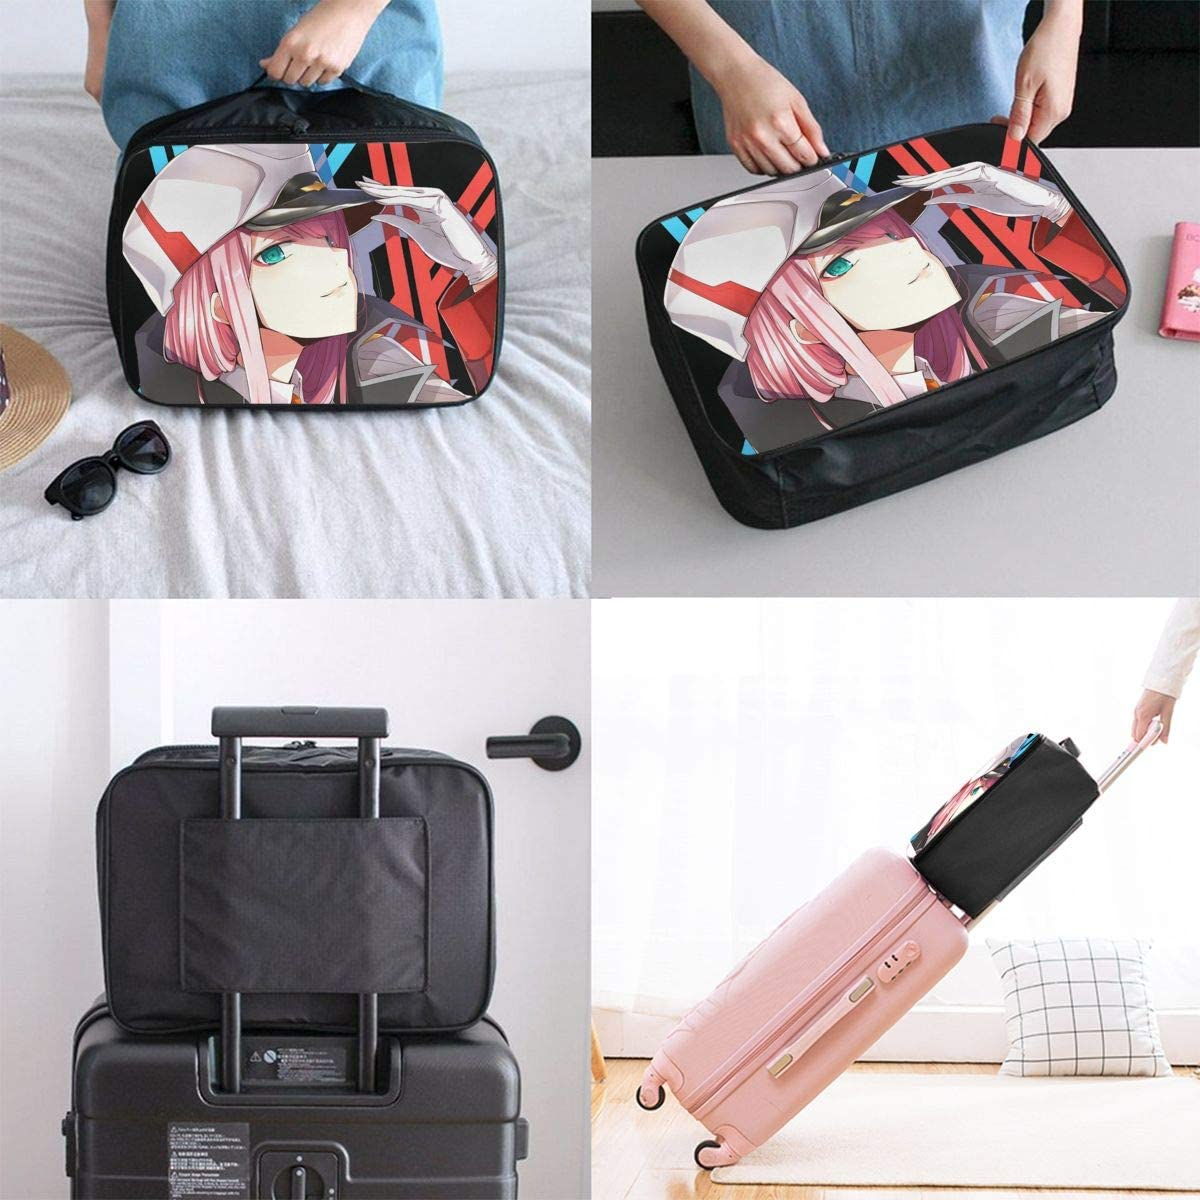 Darling In The Franxx XX Lightweight Large Capacity Portable Luggage Bag Hanging Organizer Bag Makeup Bag